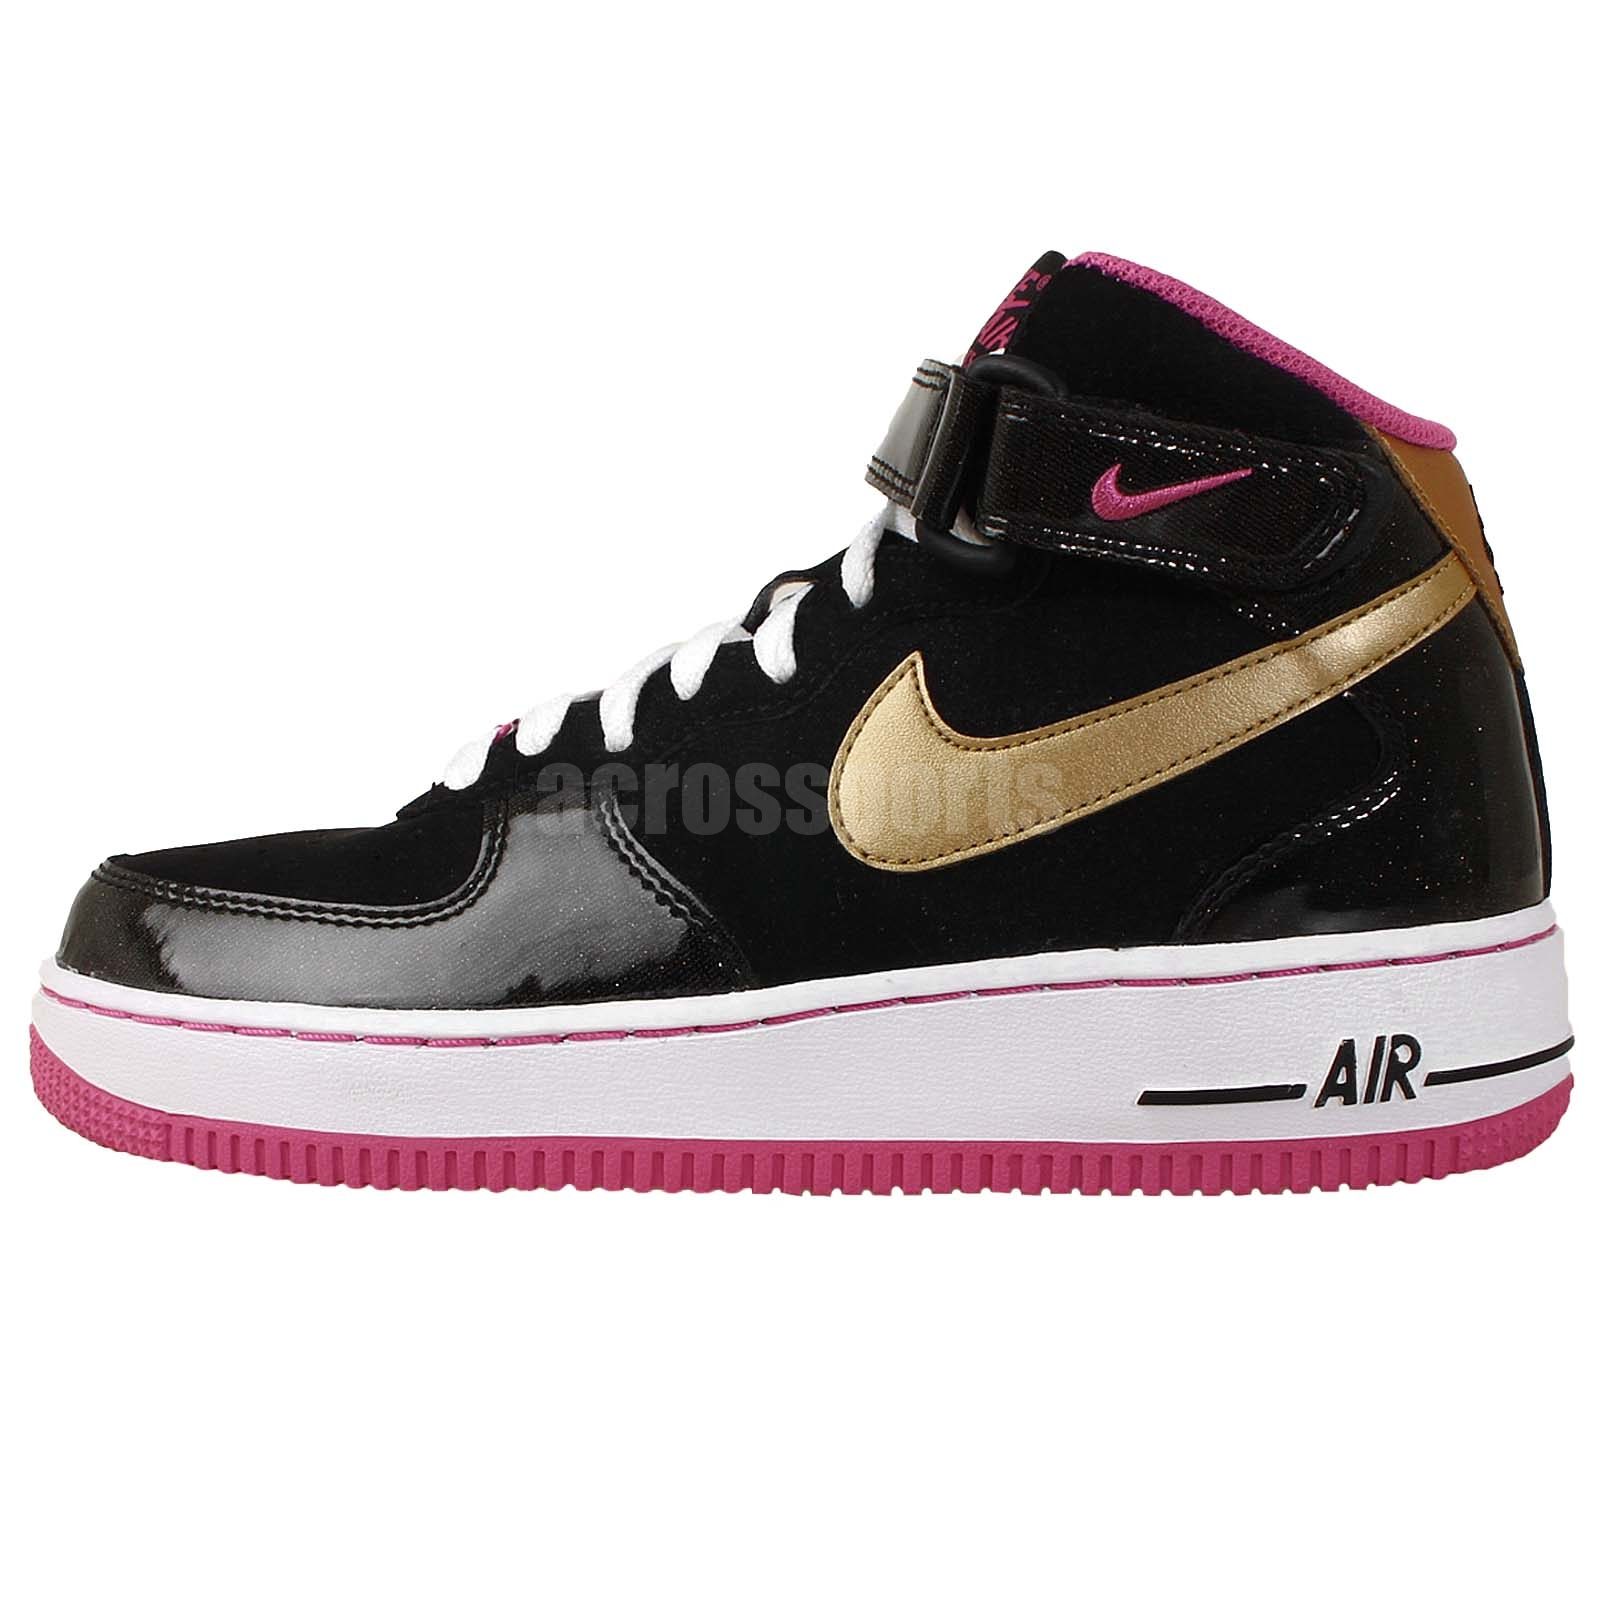 nike air force 1 mid gs piano black gold pink youth girls. Black Bedroom Furniture Sets. Home Design Ideas